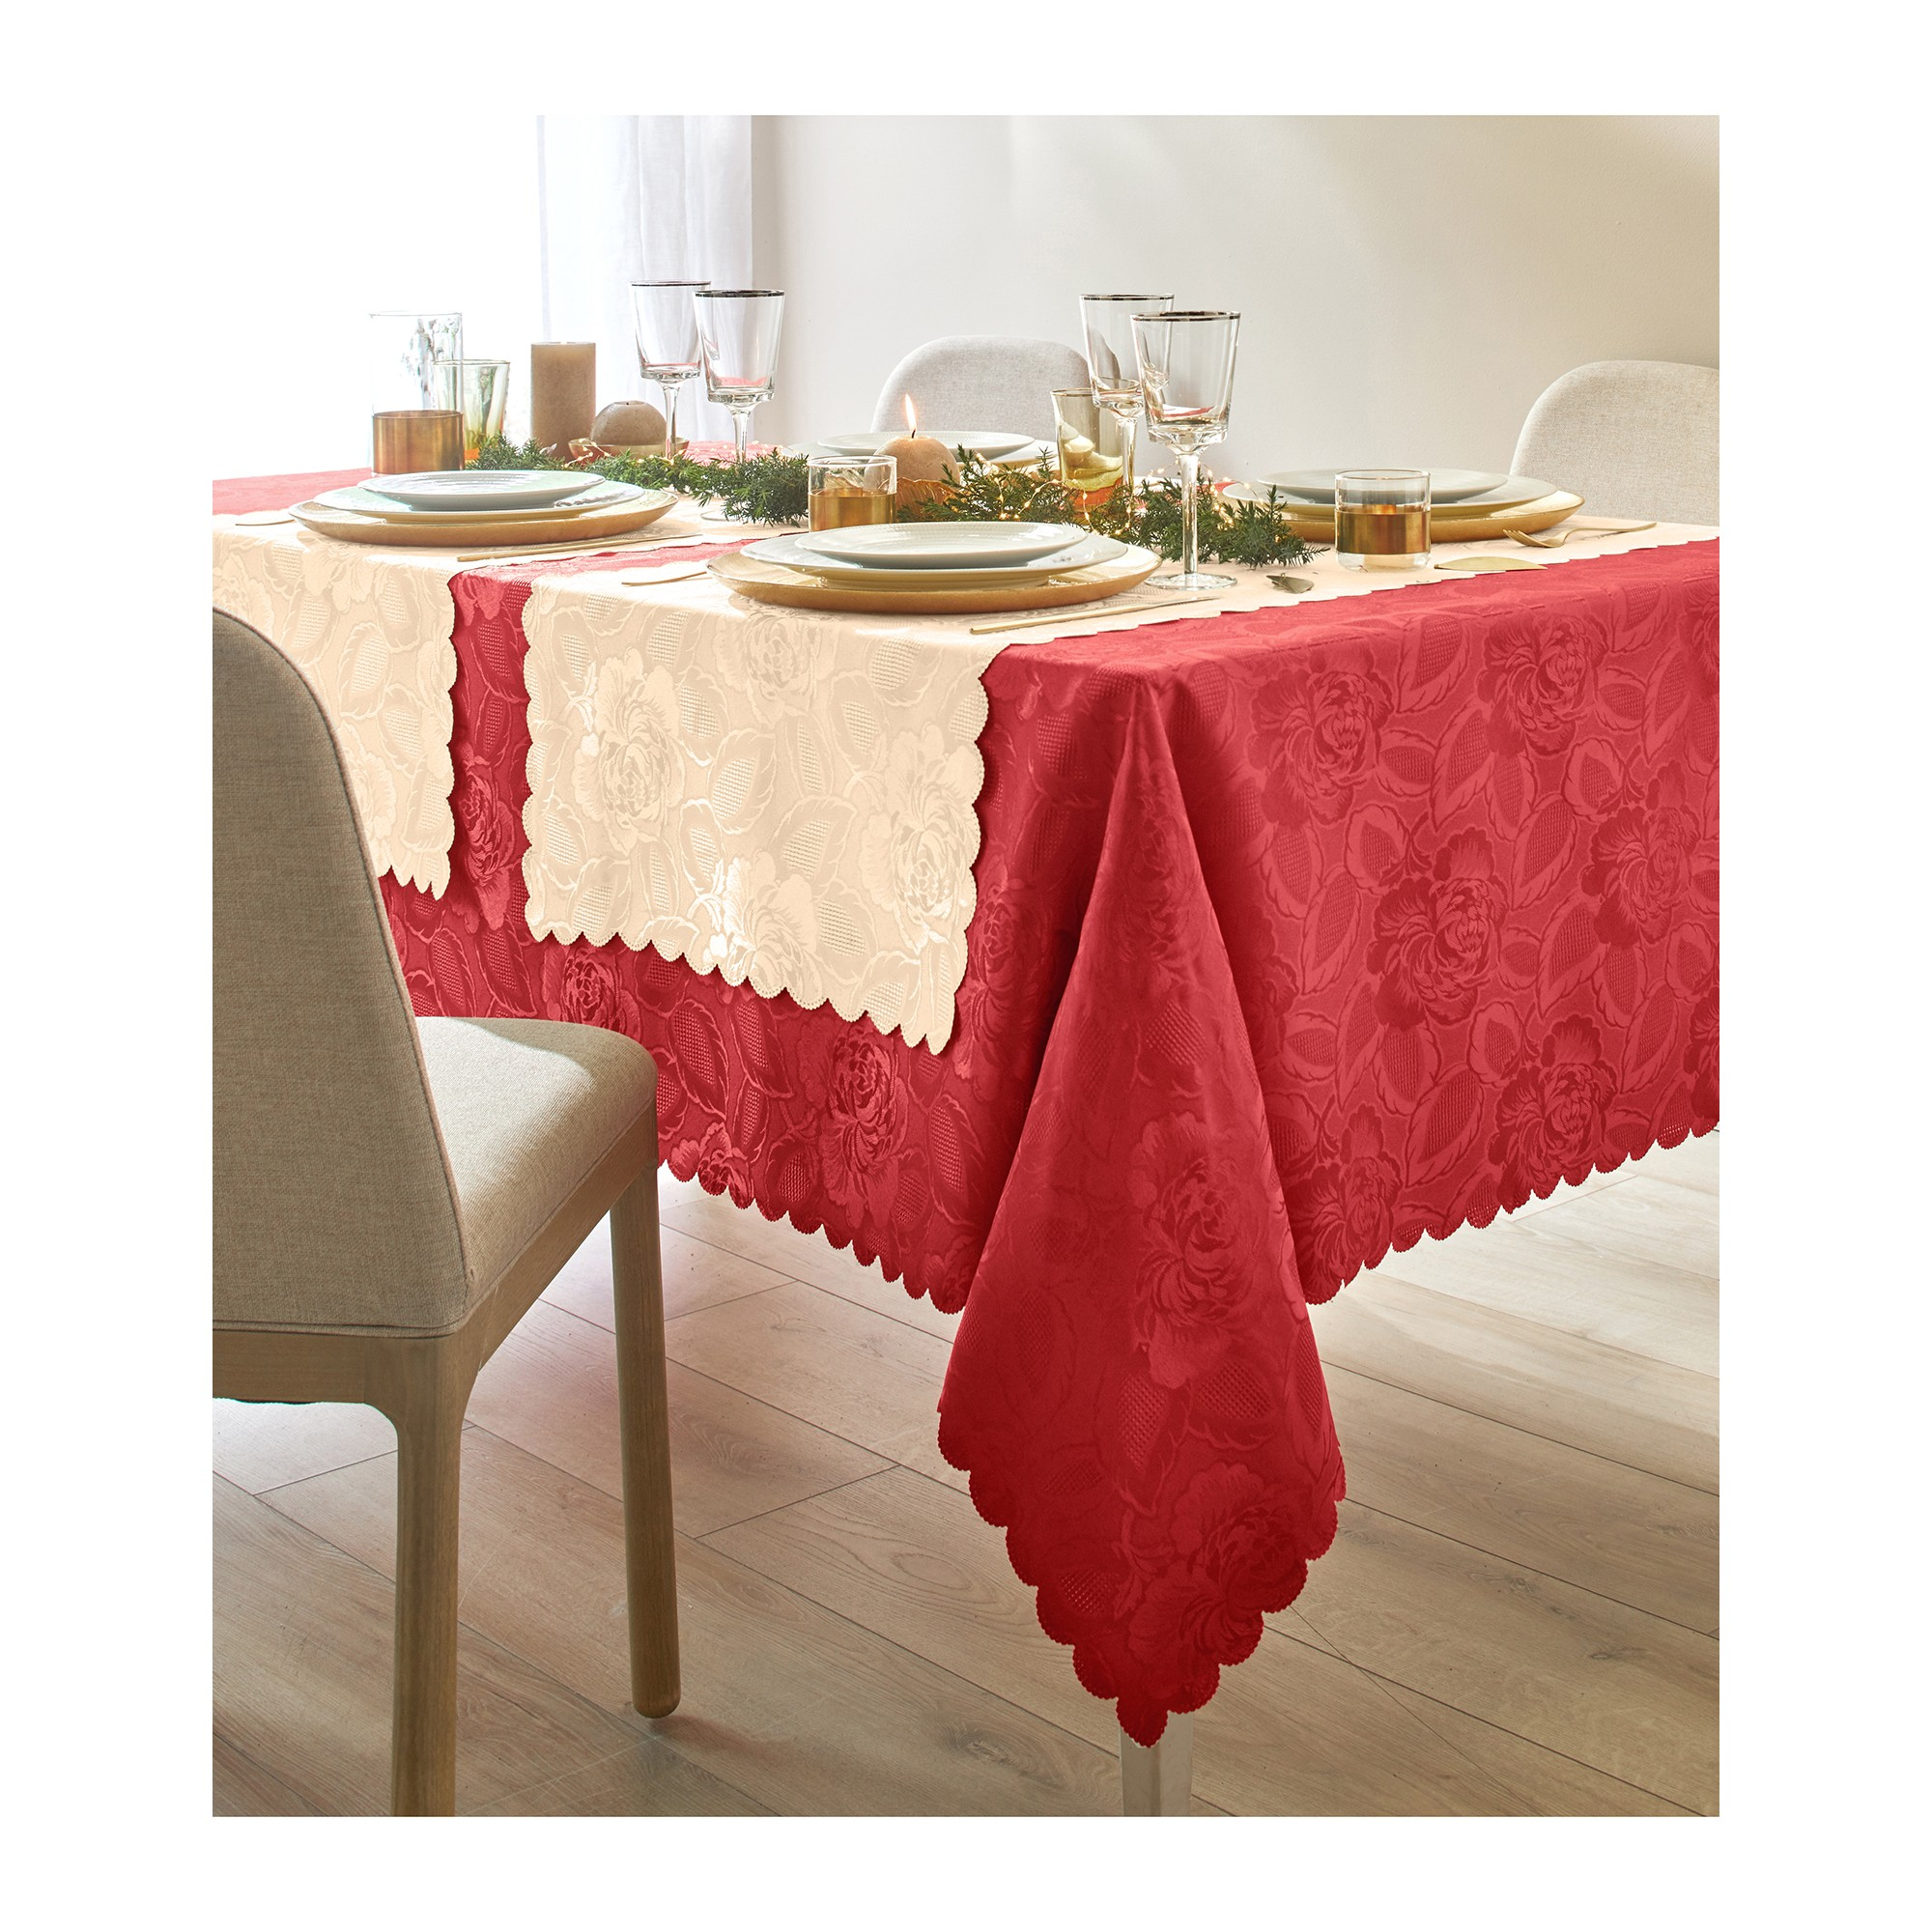 Nappe jacquard damass blancheporte - Nappe rectangulaire grande taille ...